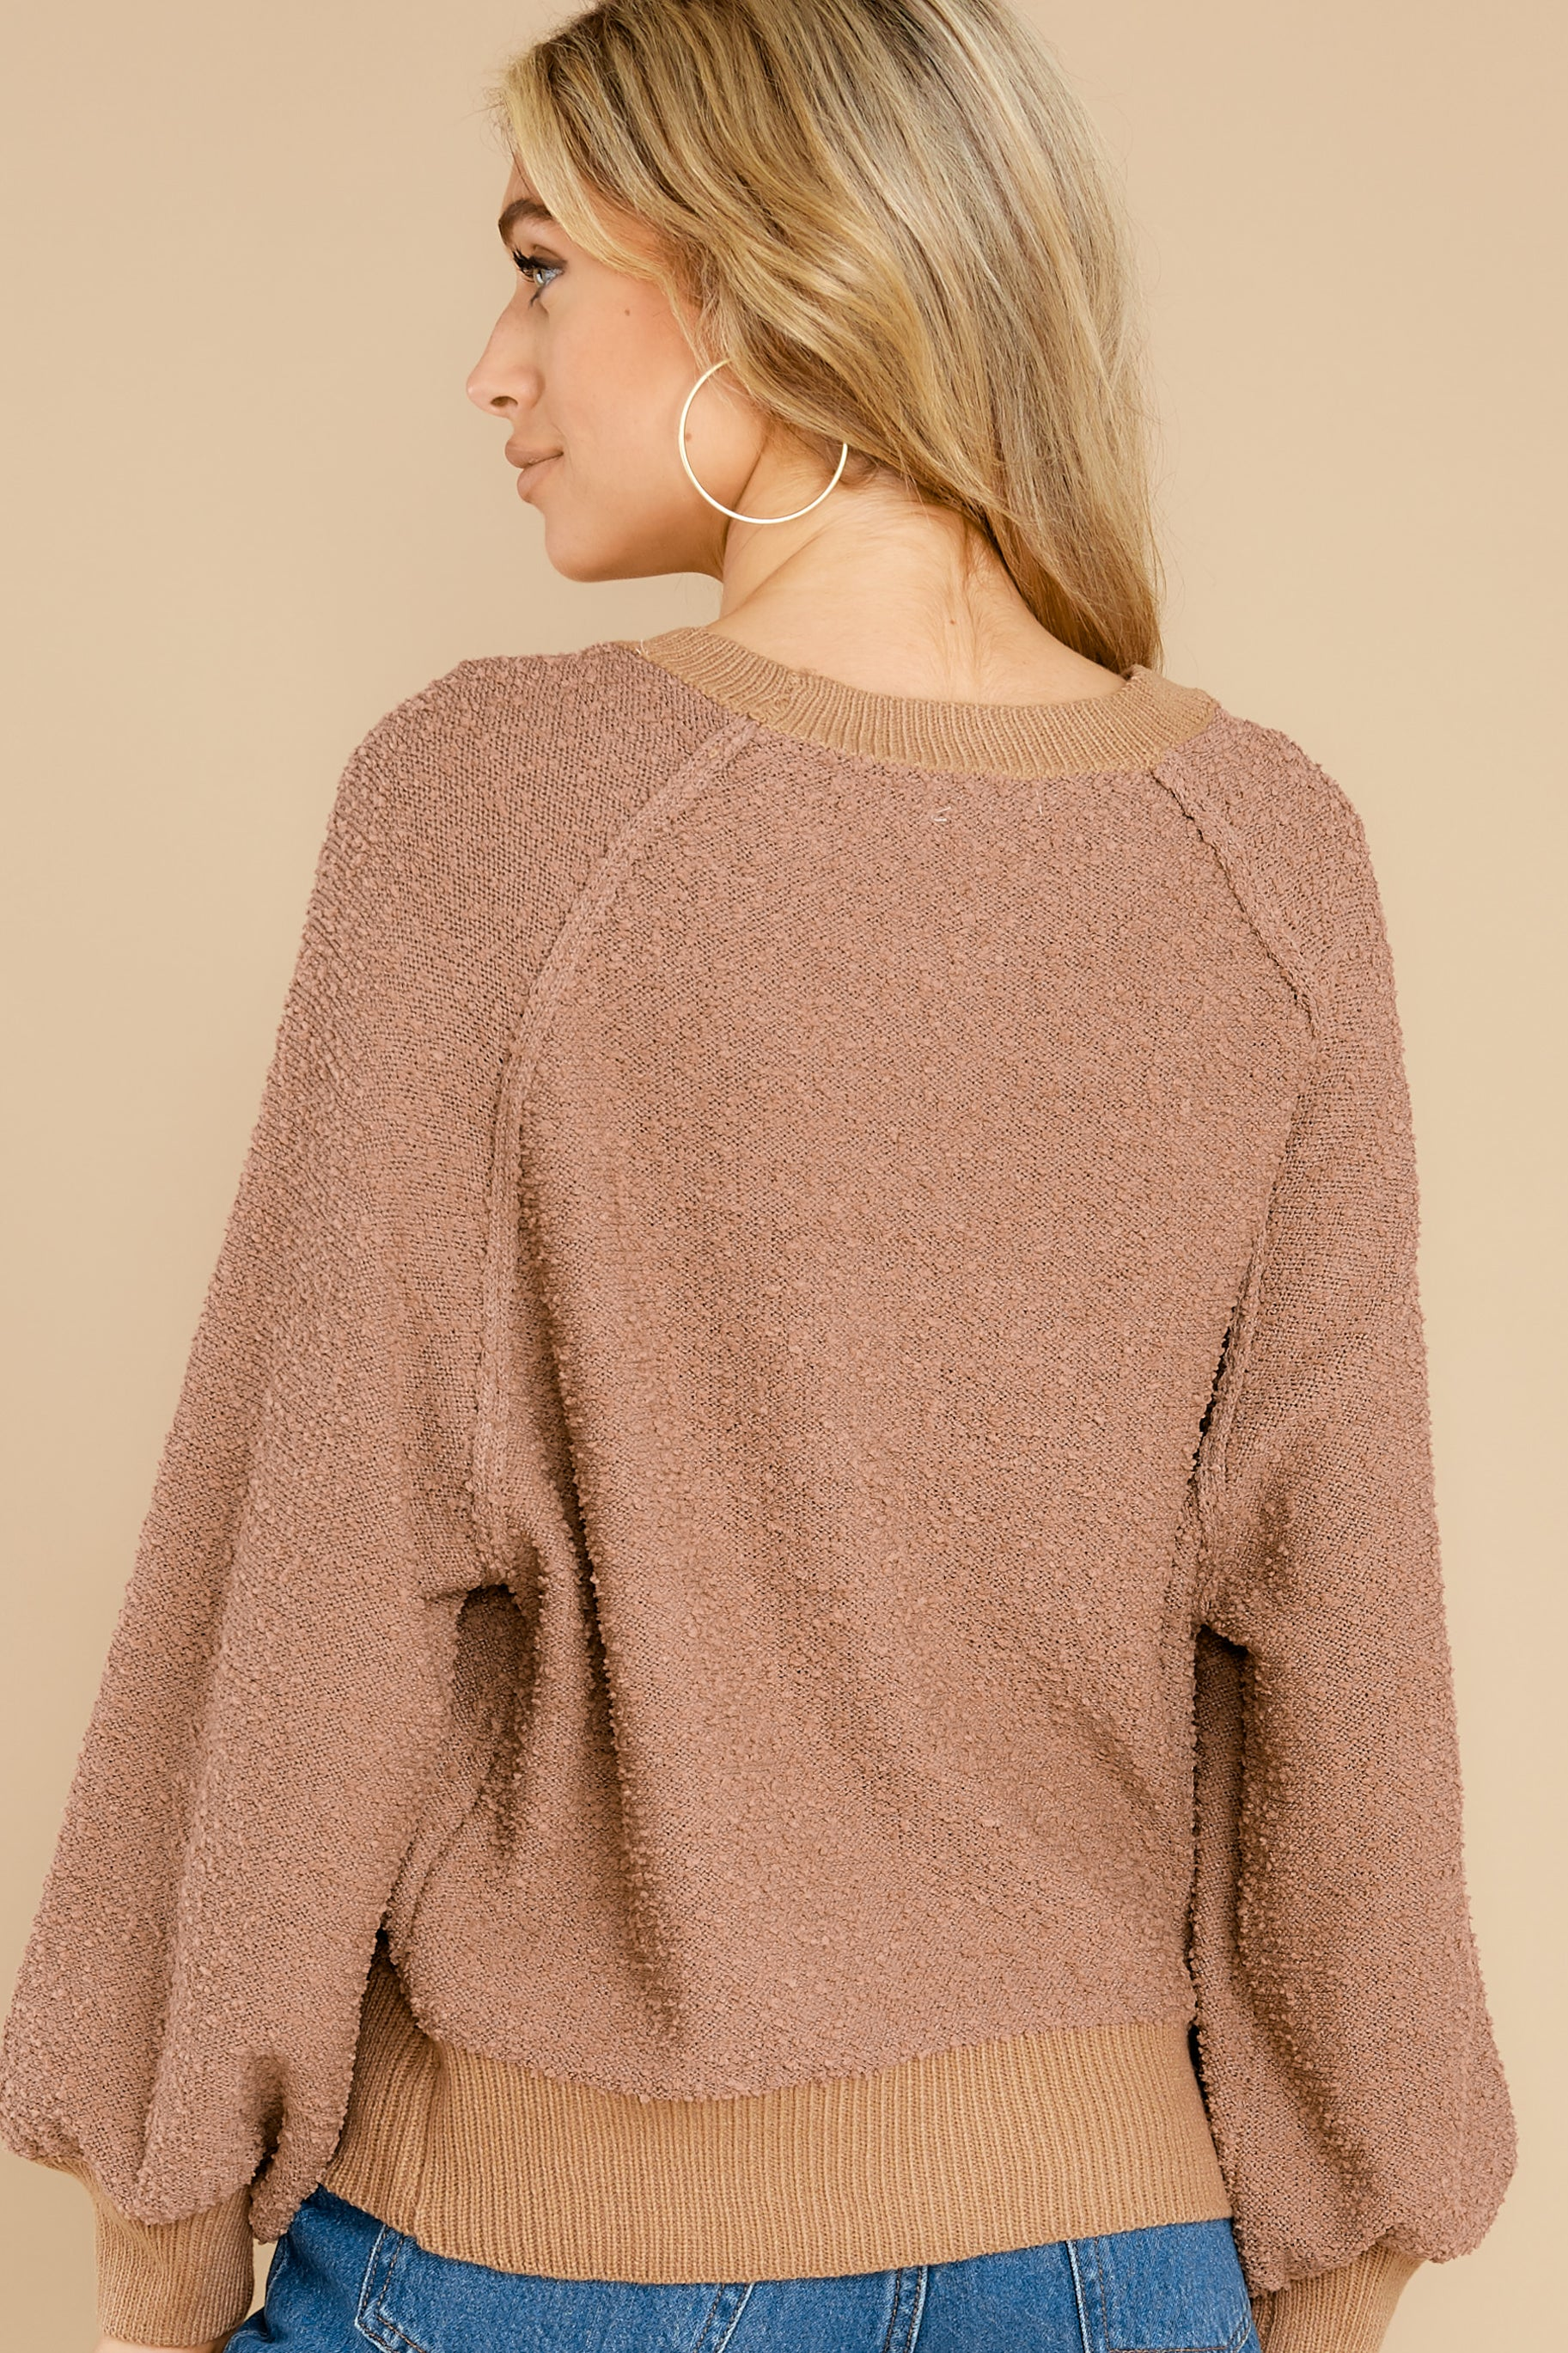 7 Feeling Carefree Mocha Sweater at reddress.com